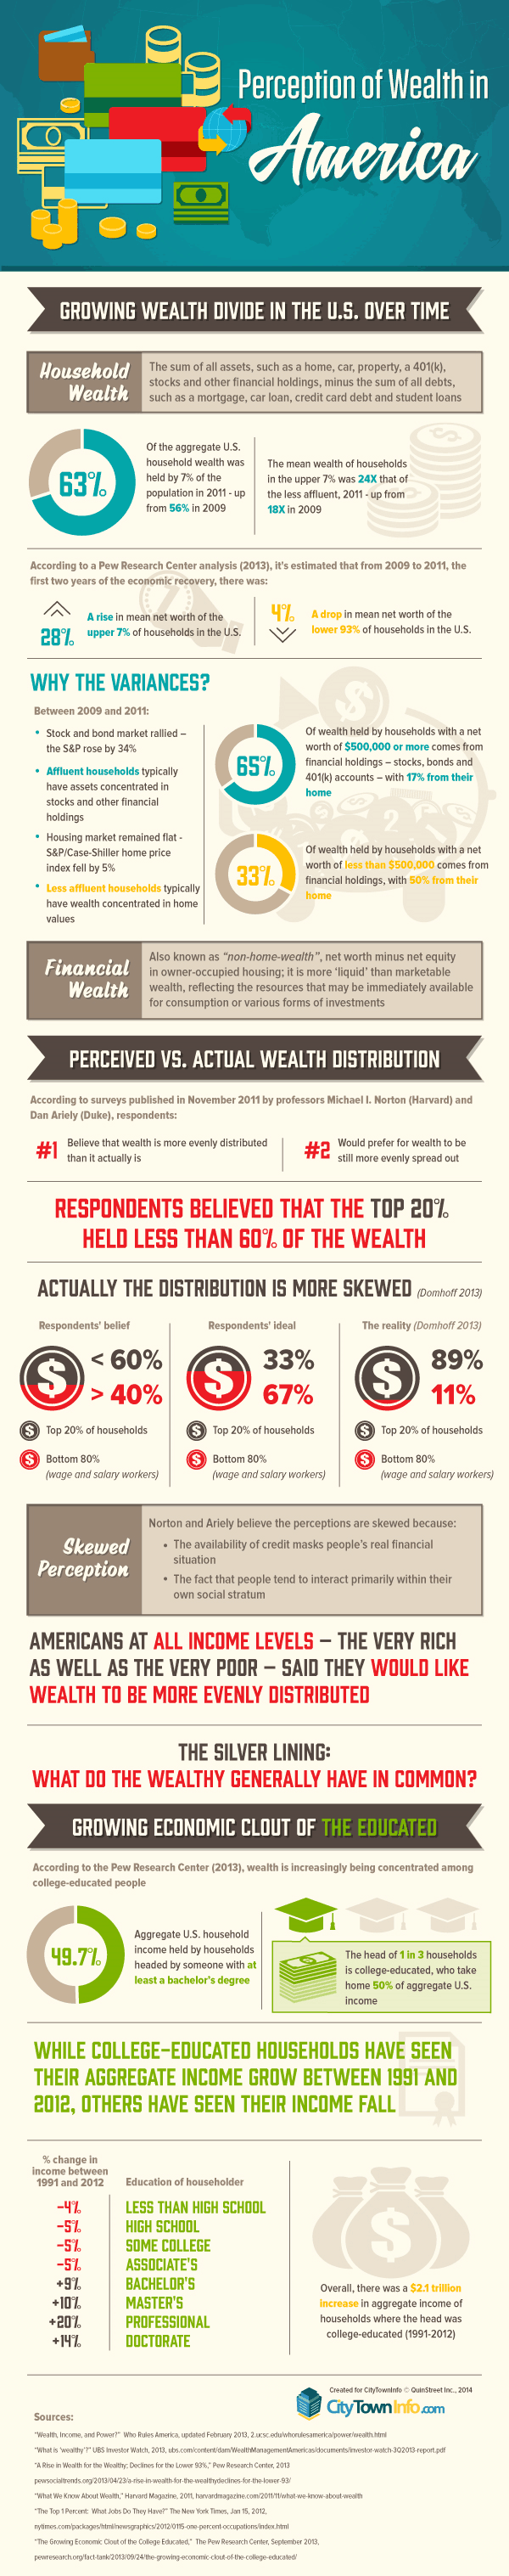 Perception vs. Reality: Wealth Inequality in the U.S.